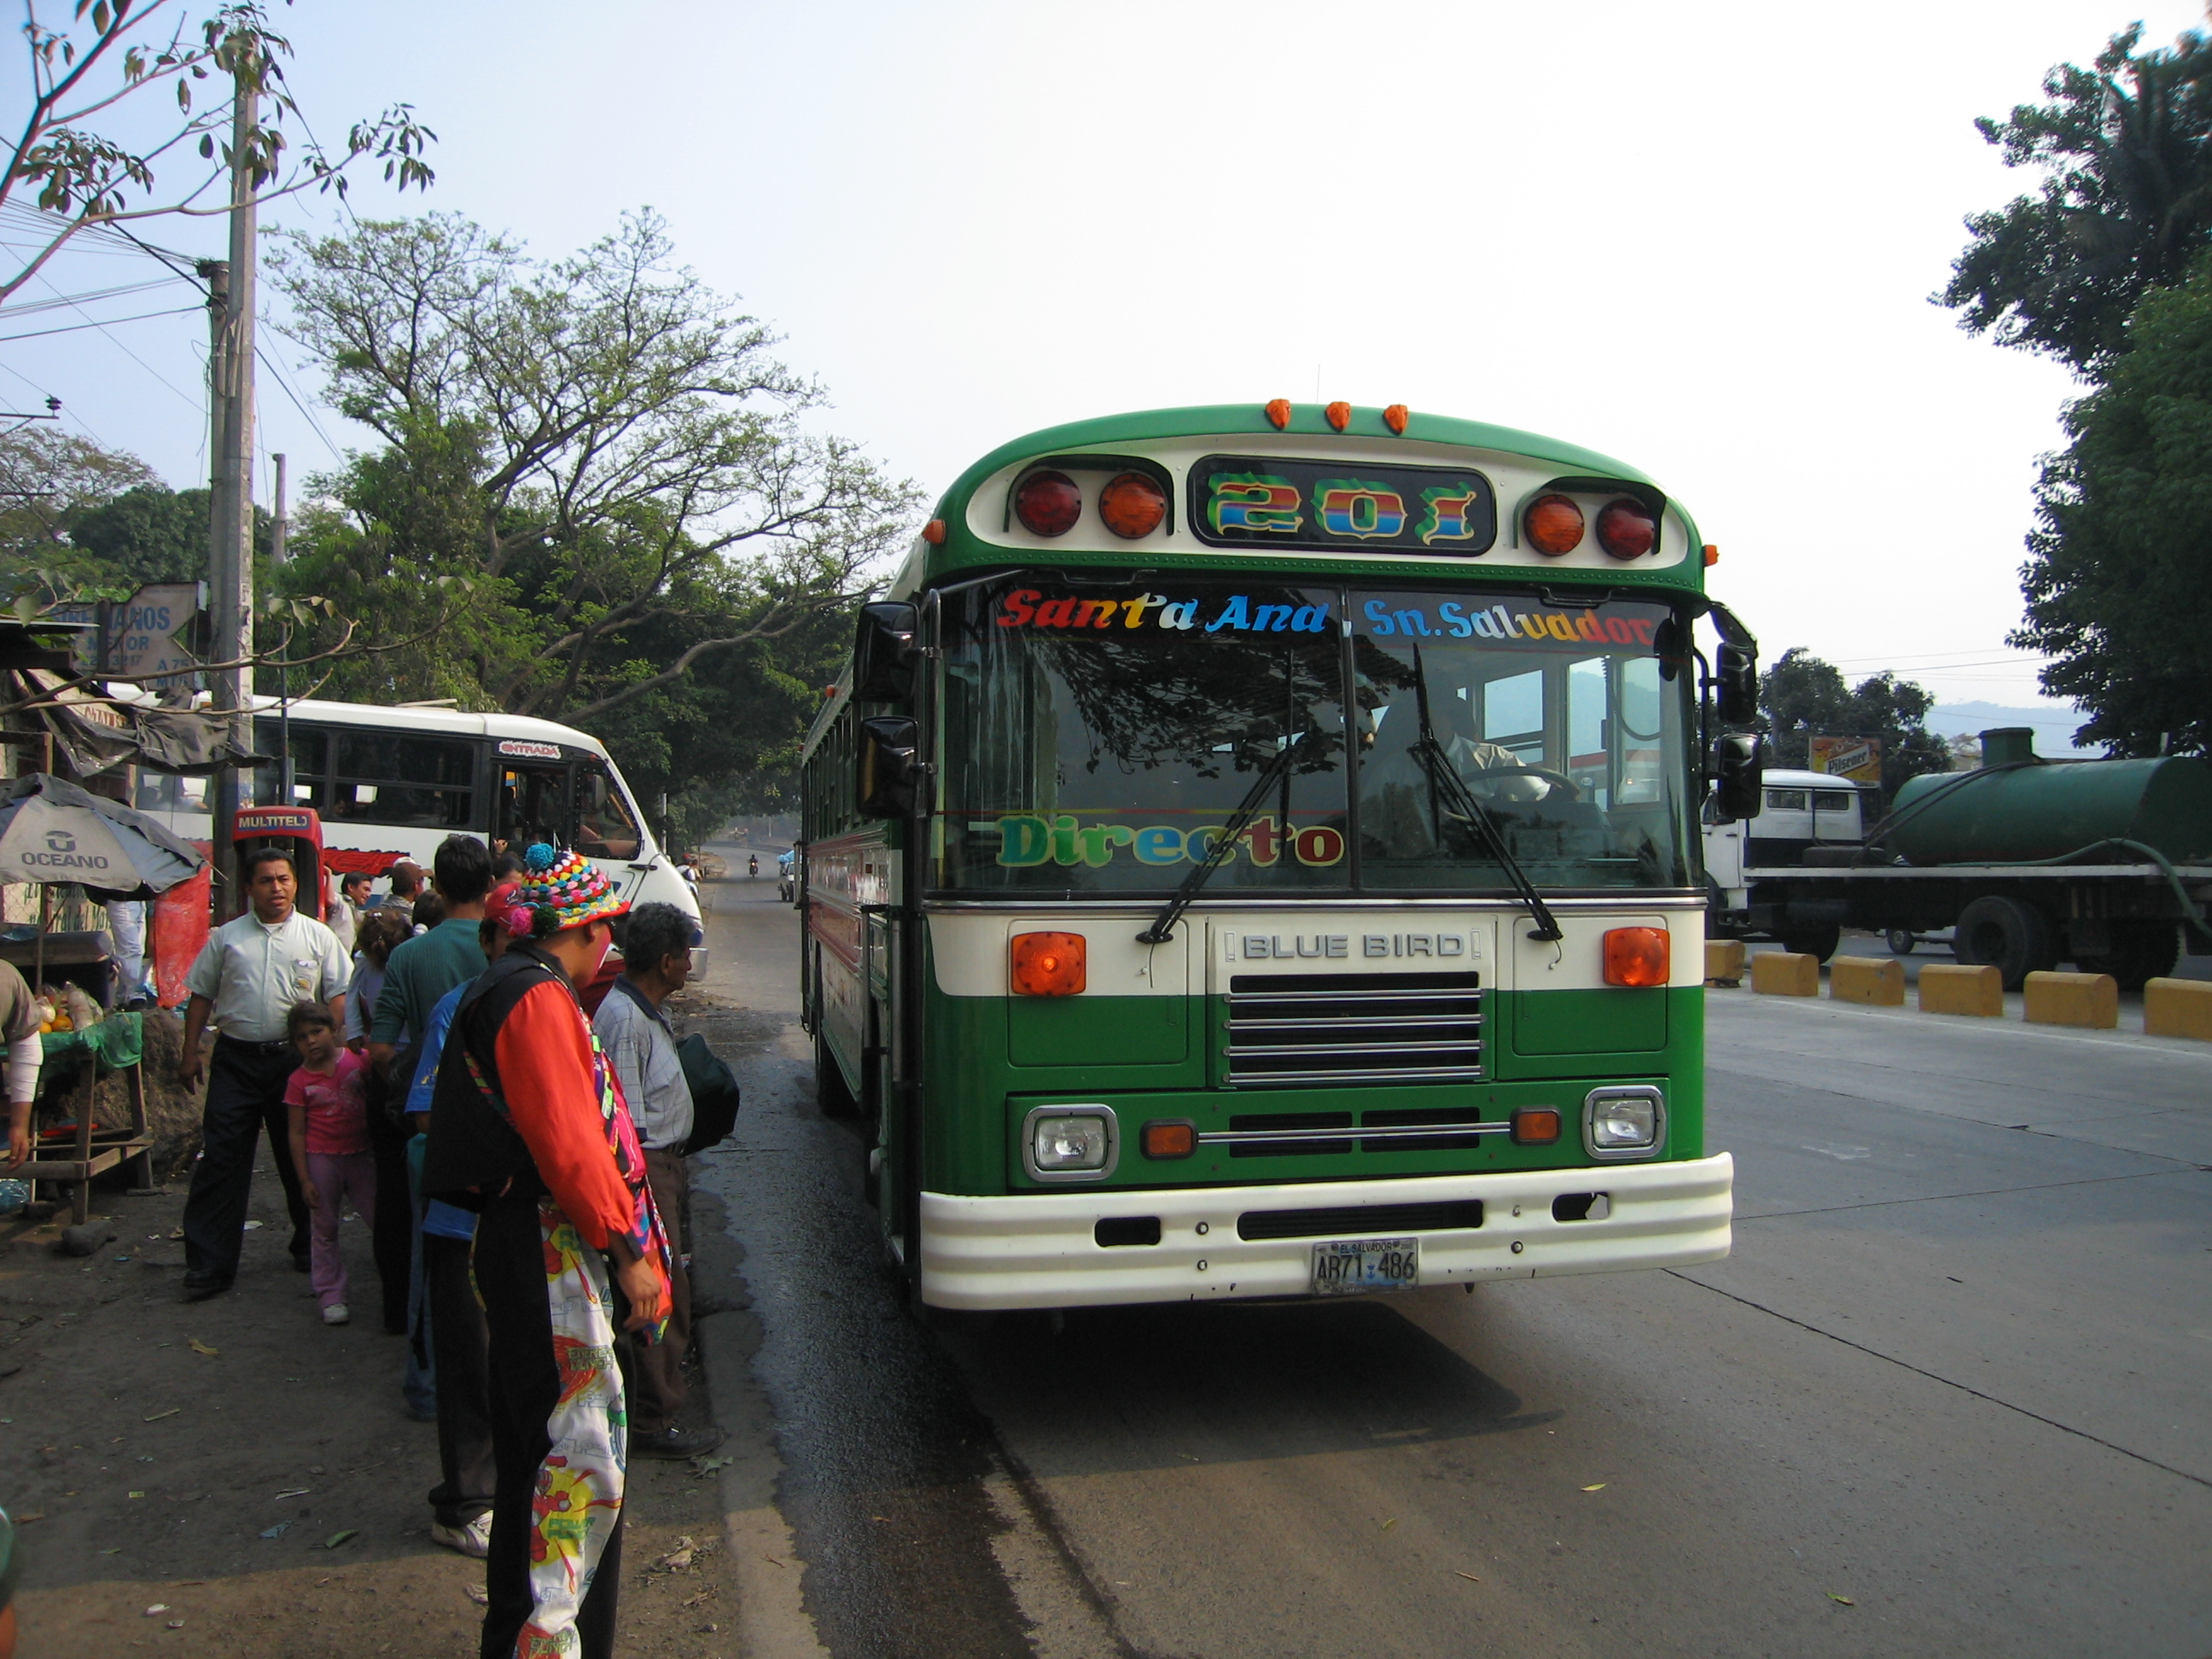 El Salvador Bus